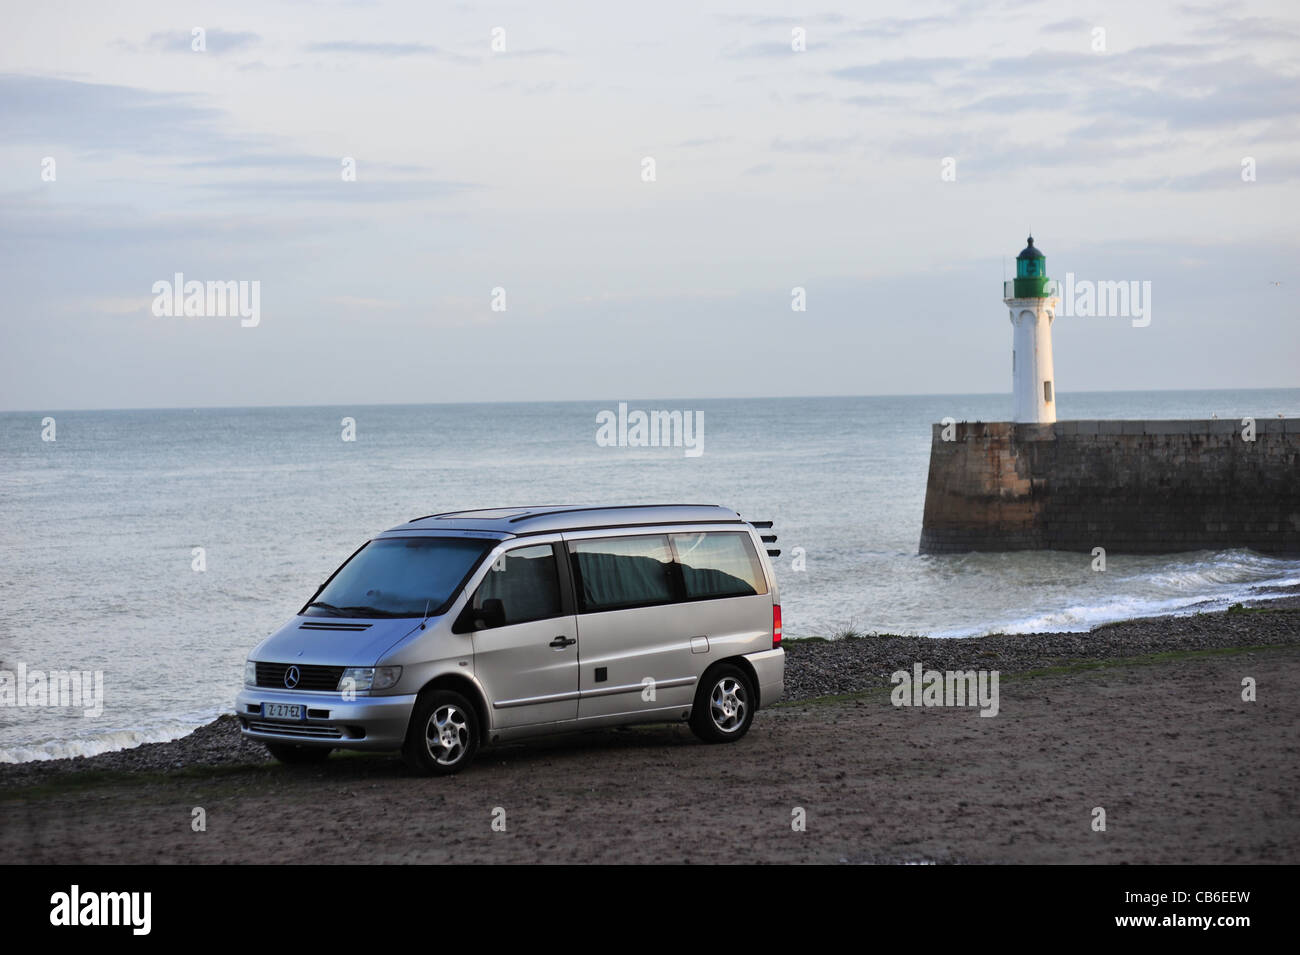 Normandy, Saint Valery en Caux town, Mercedes Marco Polo on seaside, camping car at dawn - Stock Image